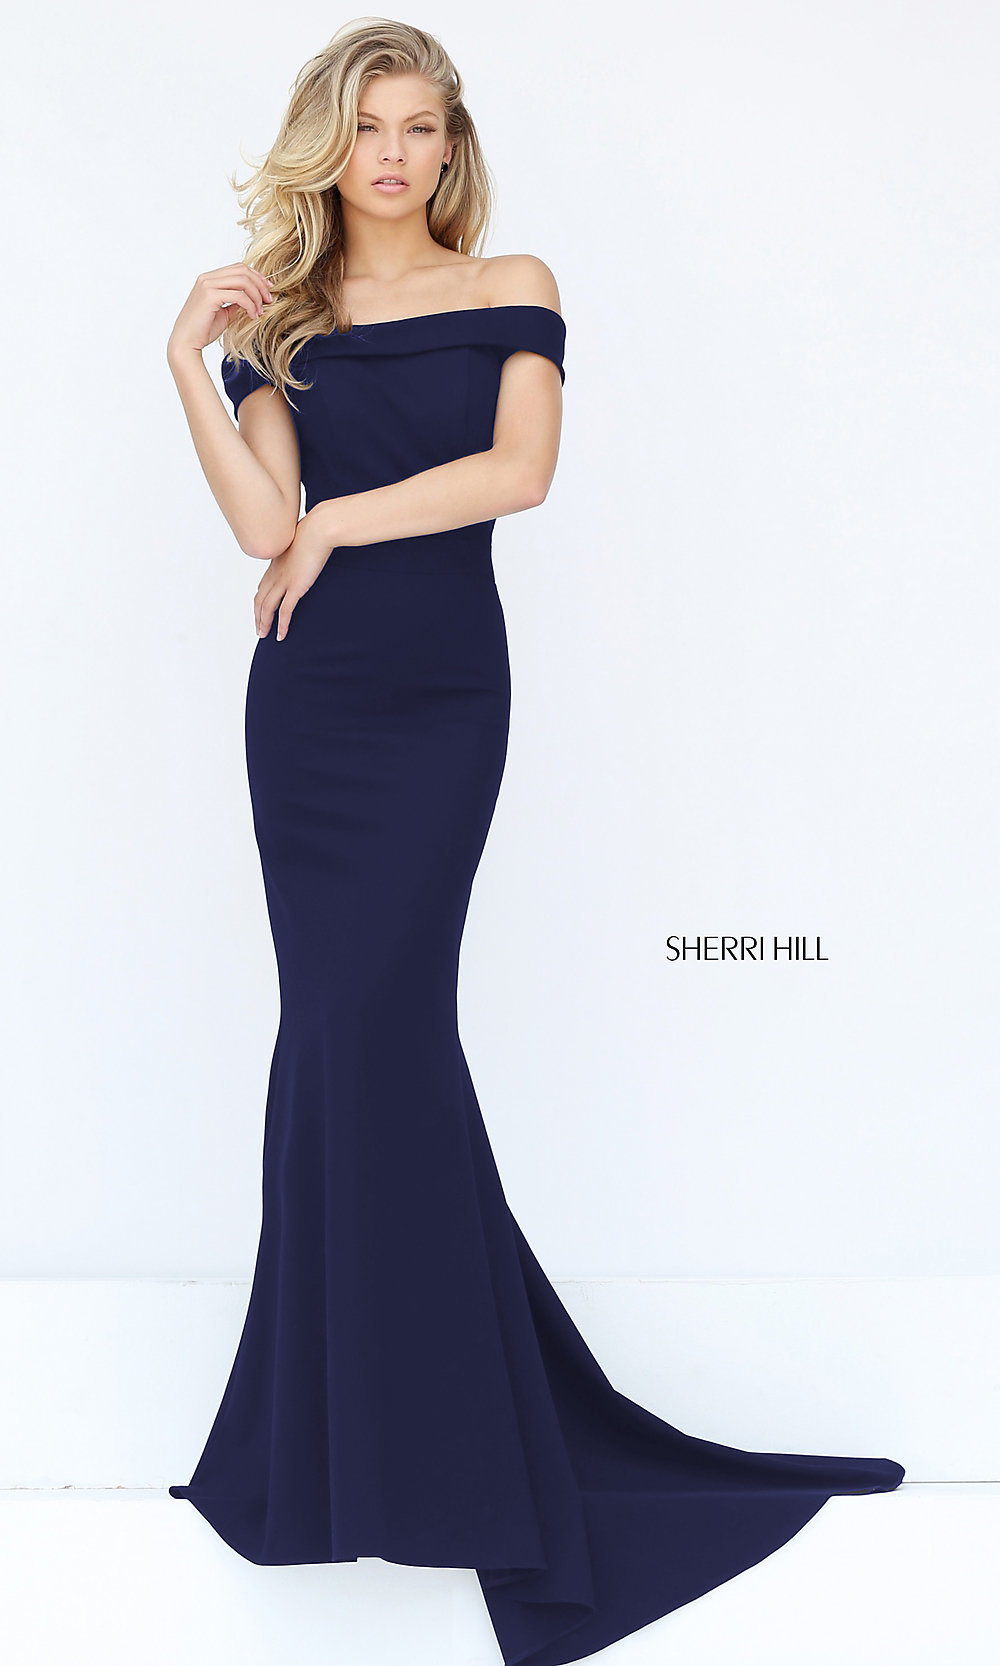 Long Off-the-Shoulder Sherri Hill Prom Dress 05dbf7cc8